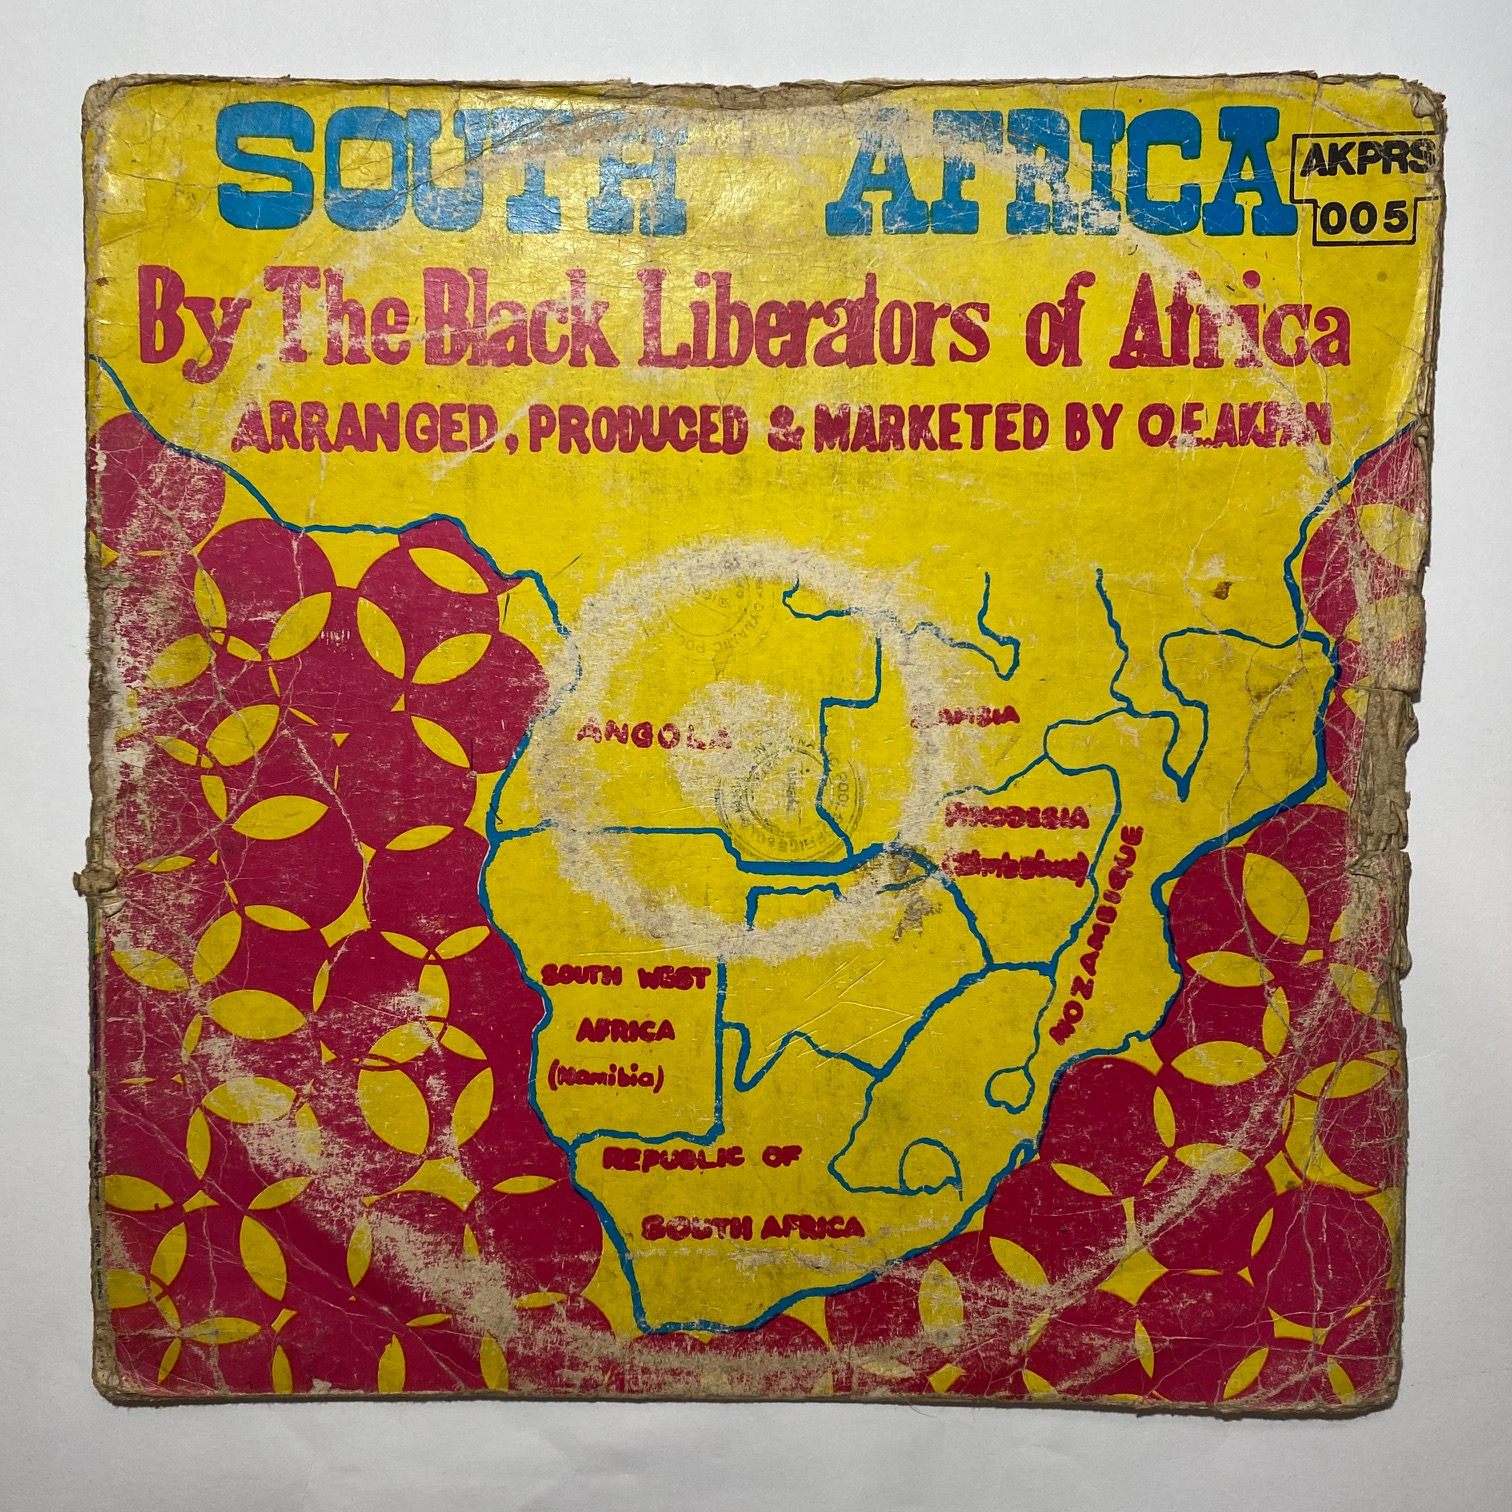 THE BLACK LIBERATORS OF AFRICA - South Africa - 33T